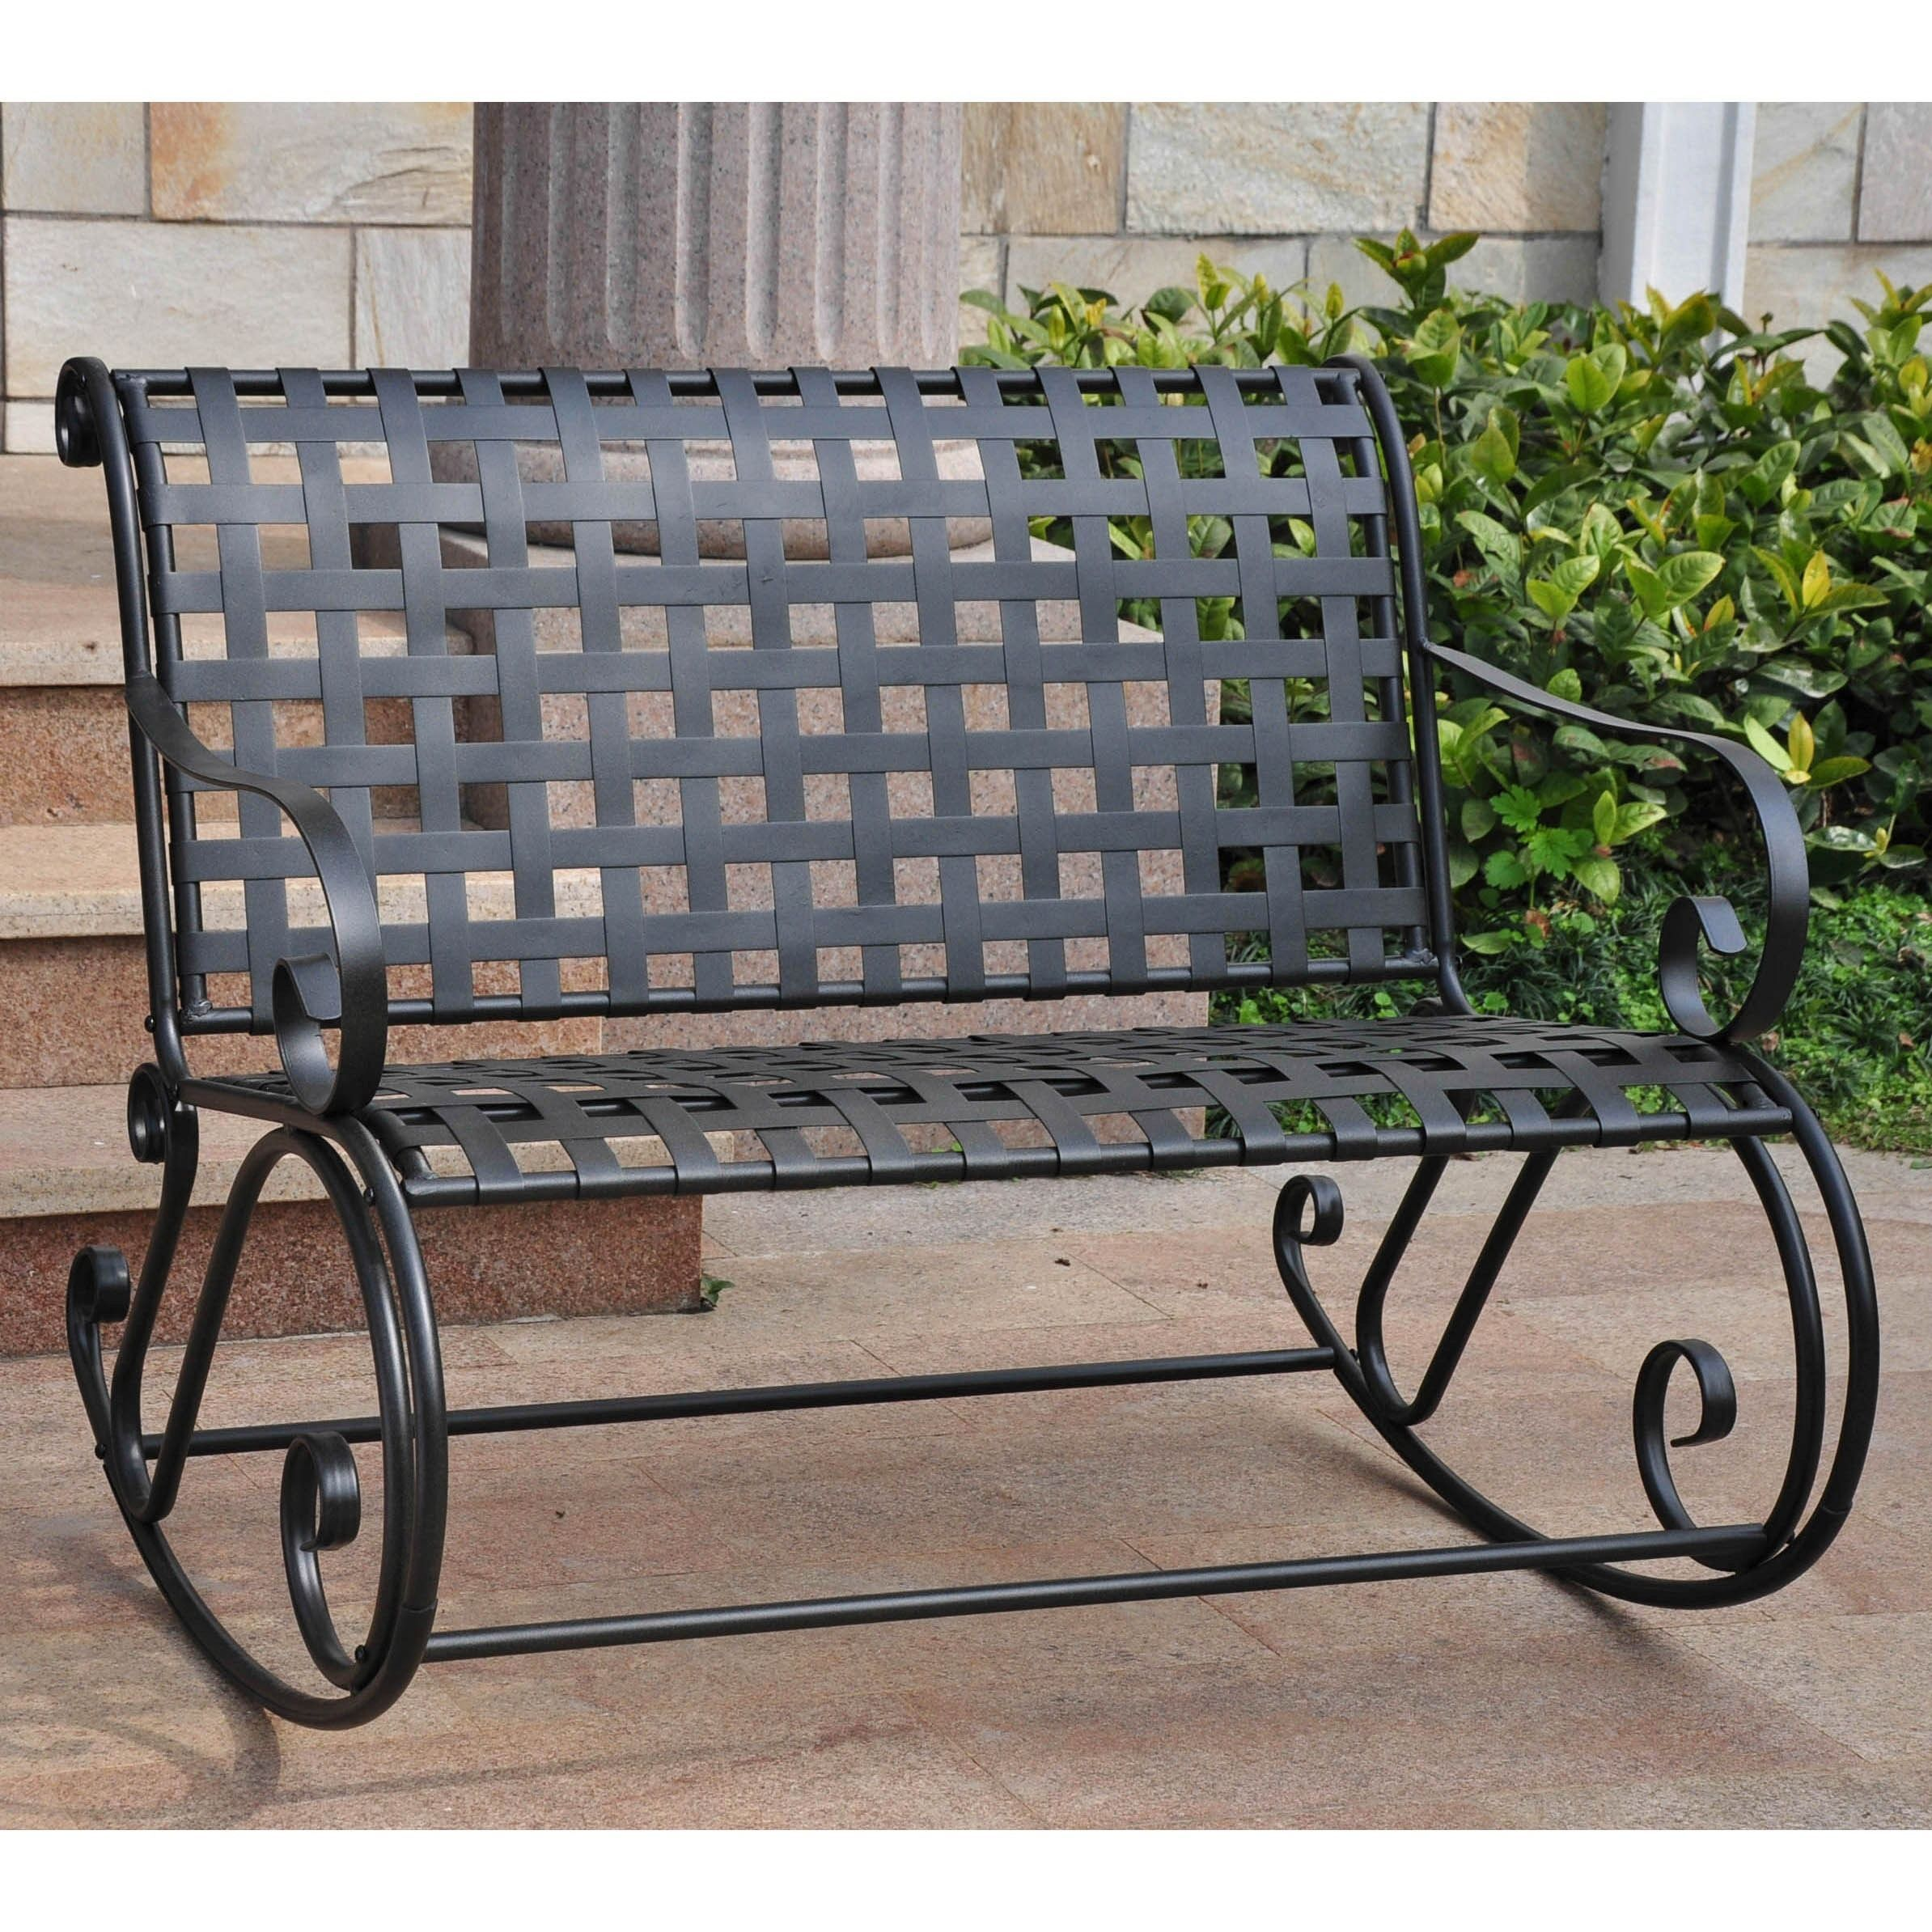 This Elegant Lattice Iron Garden Bench Will Add Beauty And A